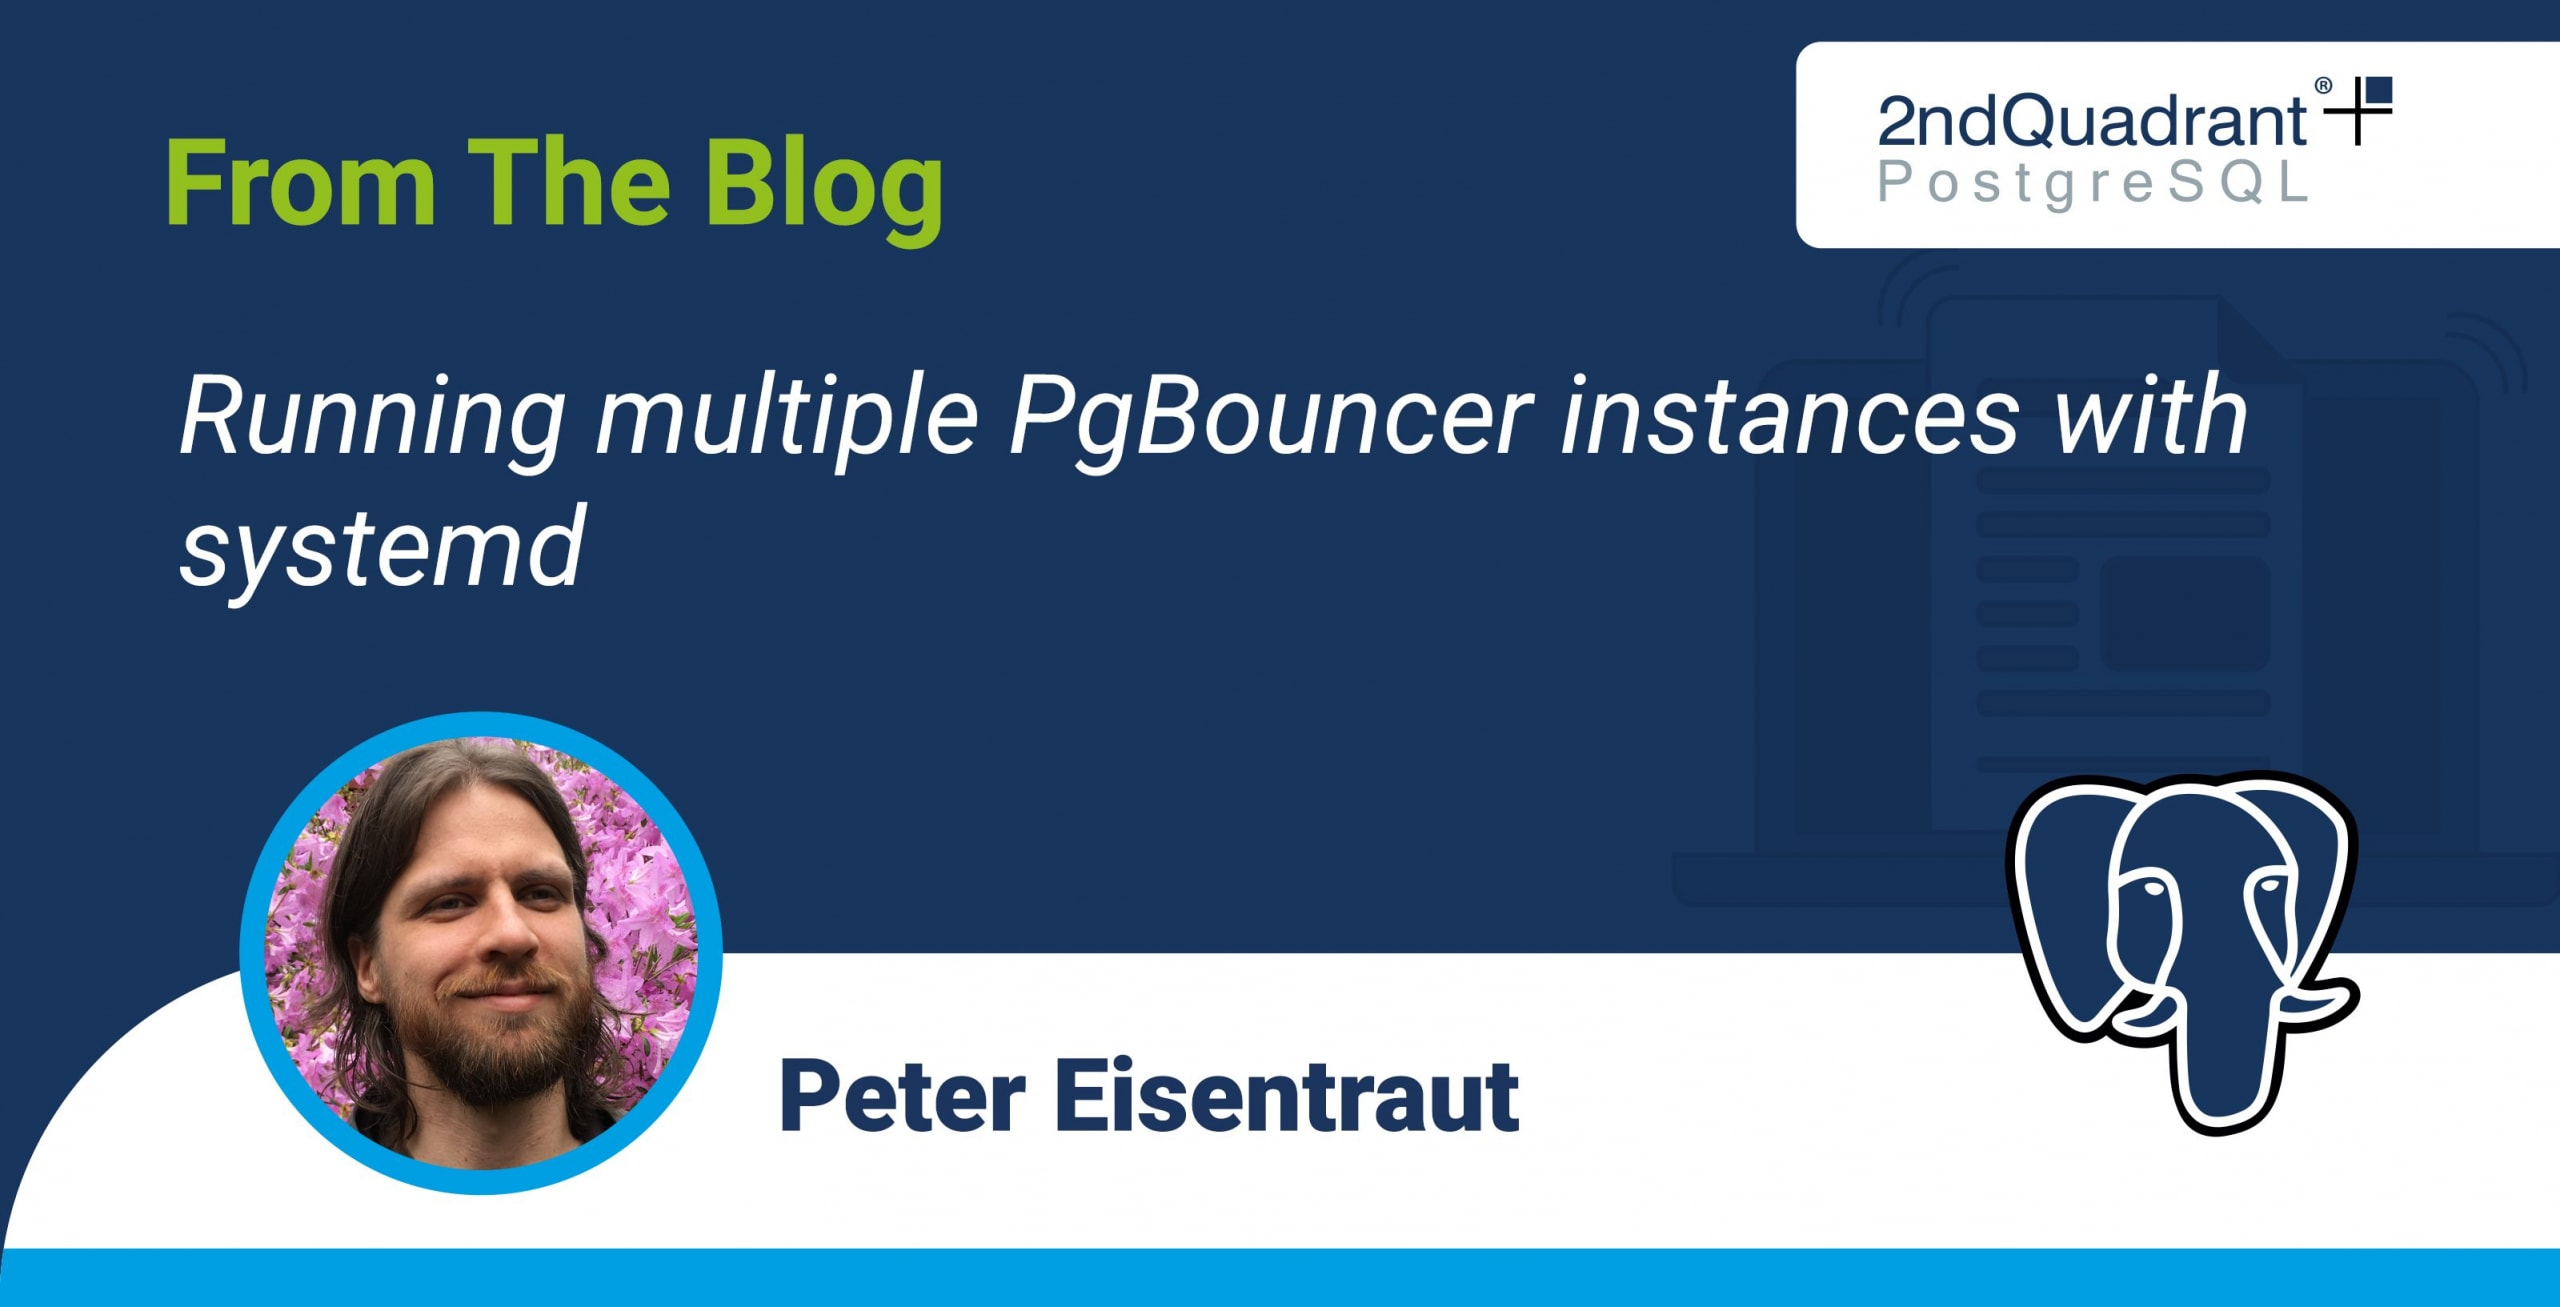 Running multiple PgBouncer instances with systemd